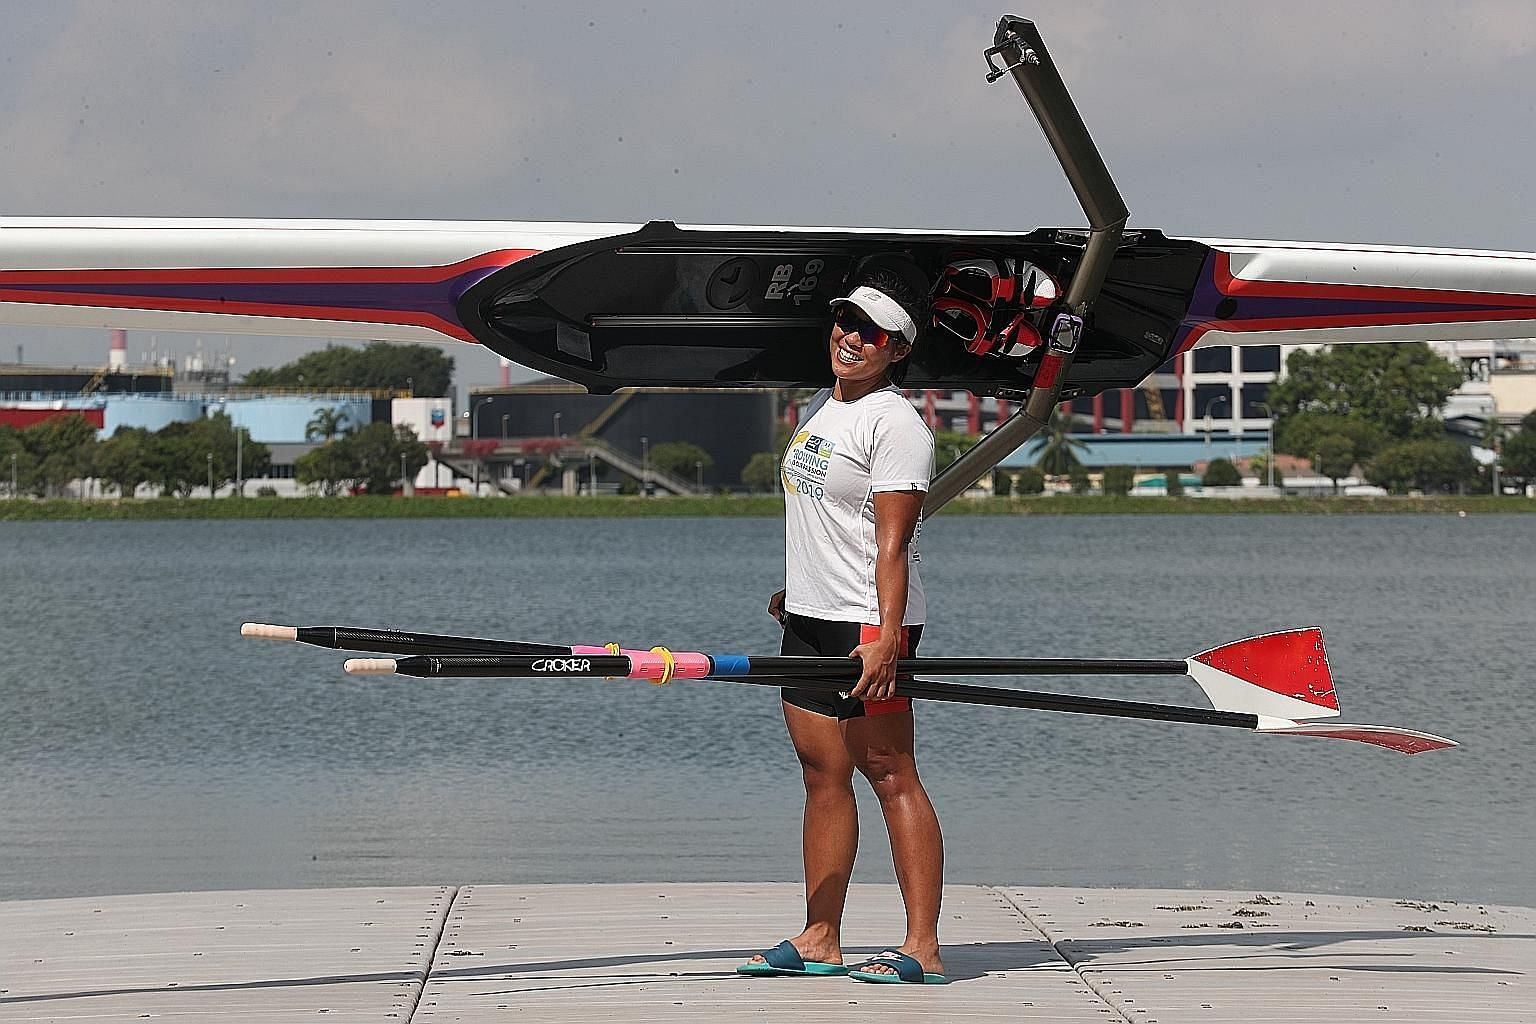 Qualifying for the Olympics consumes Joan Poh. It has led her to empty her savings, buy her own boat for $18,000, travel to multiple nations and hunt for coaches. ST PHOTO: TIMOTHY DAVID